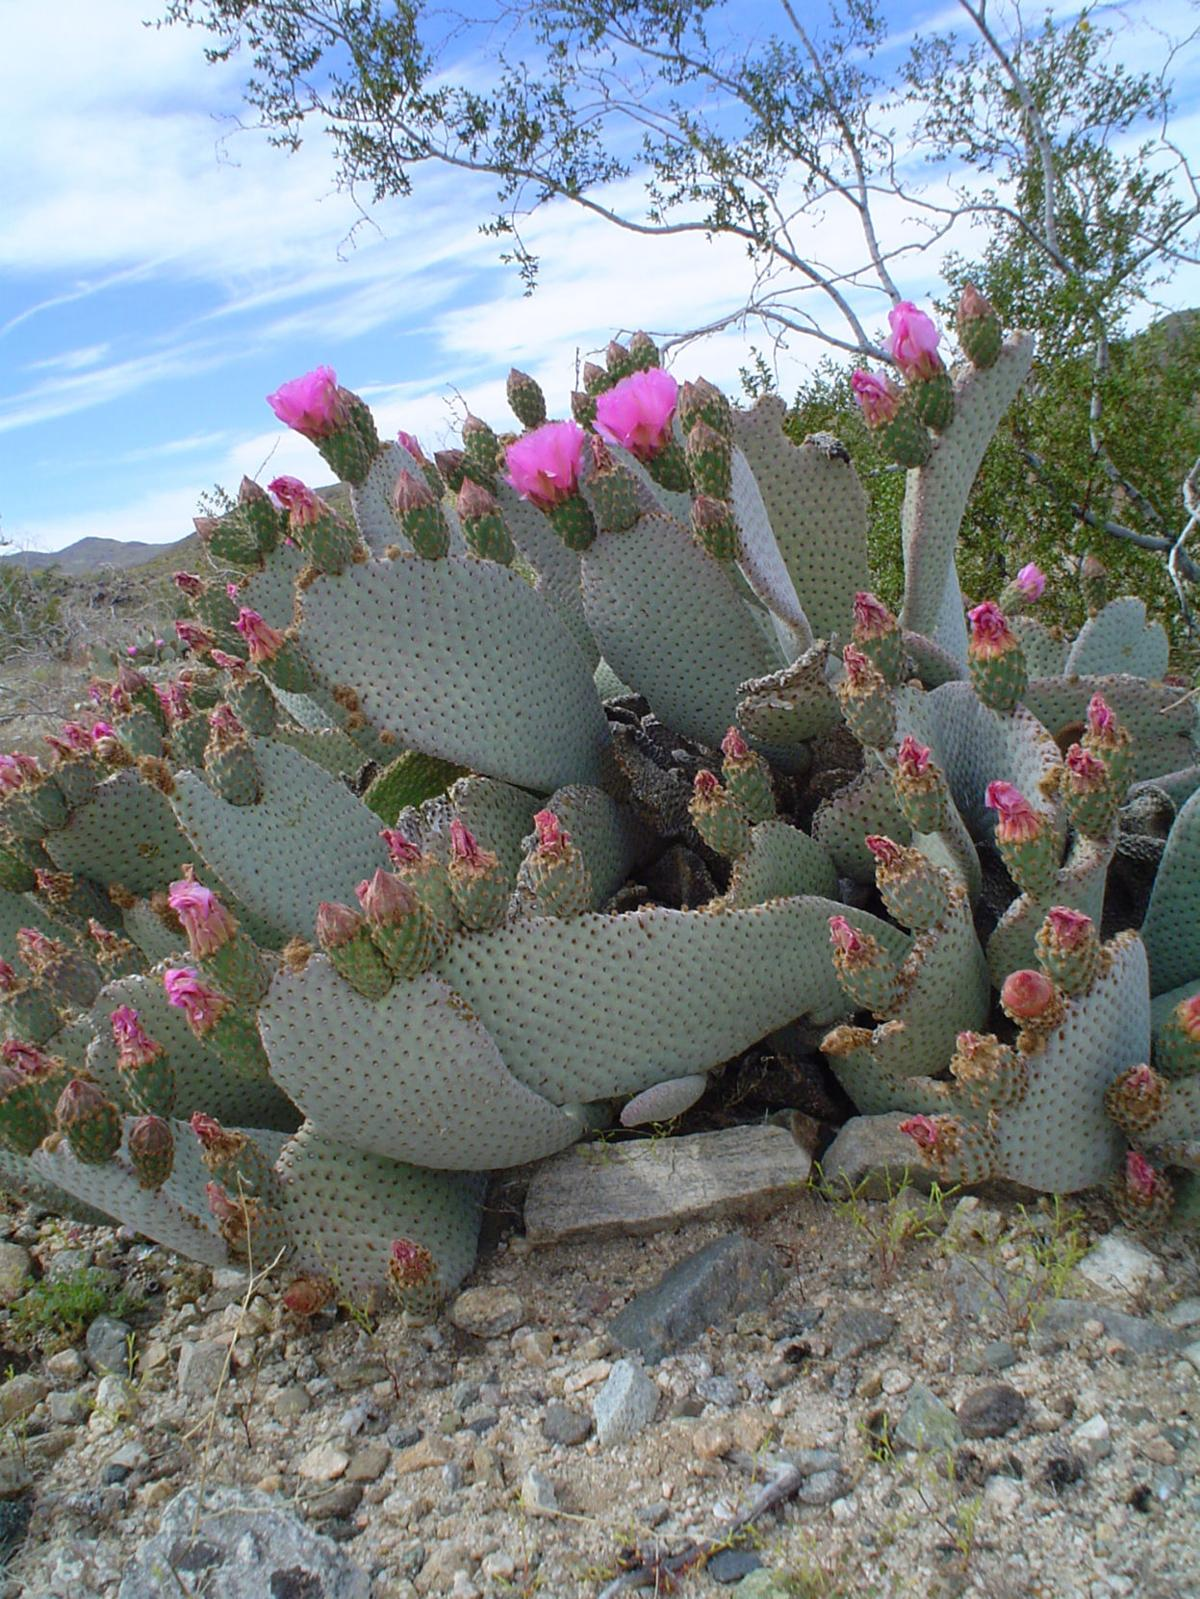 Yardsmart Beware The Prickly Pear Cactus Wvnewscom